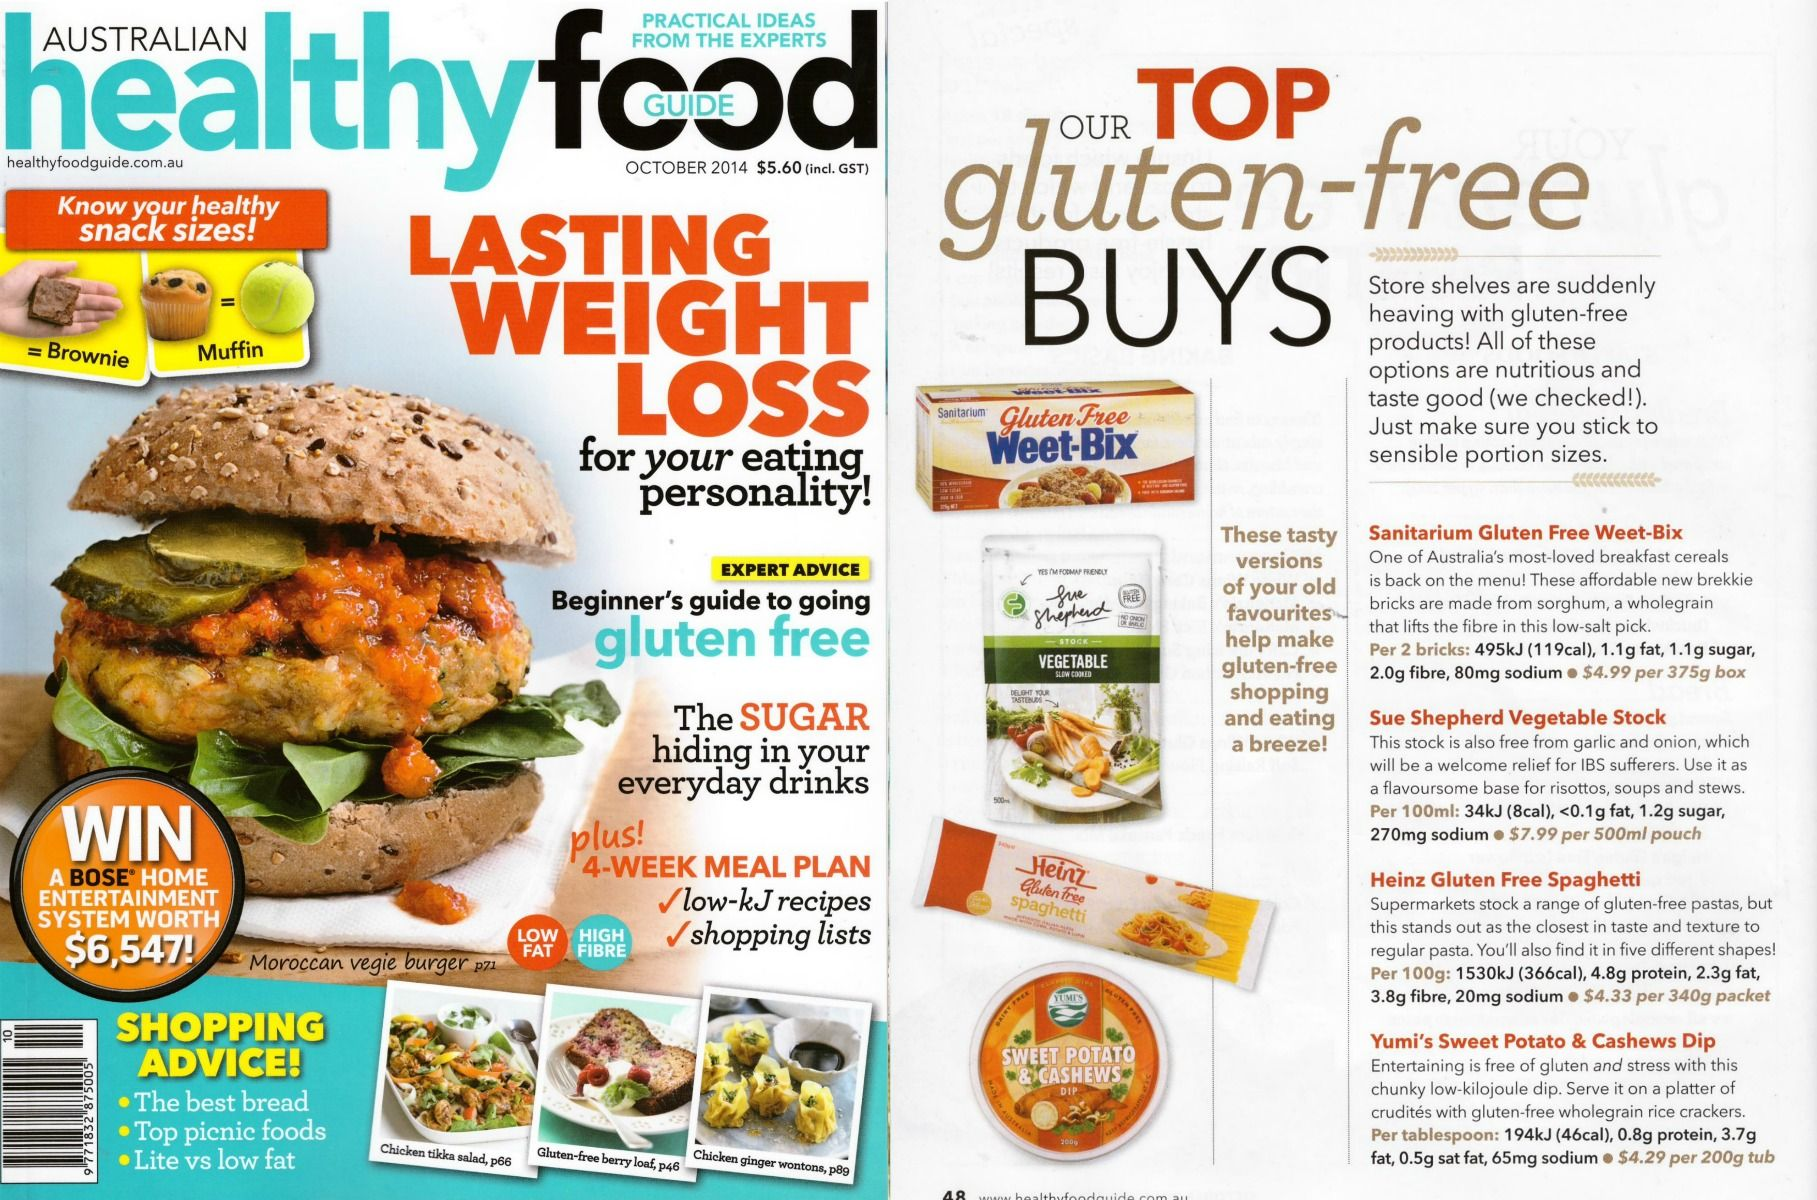 The Top Ten Gluten Free Buys Article In The Healthy Food